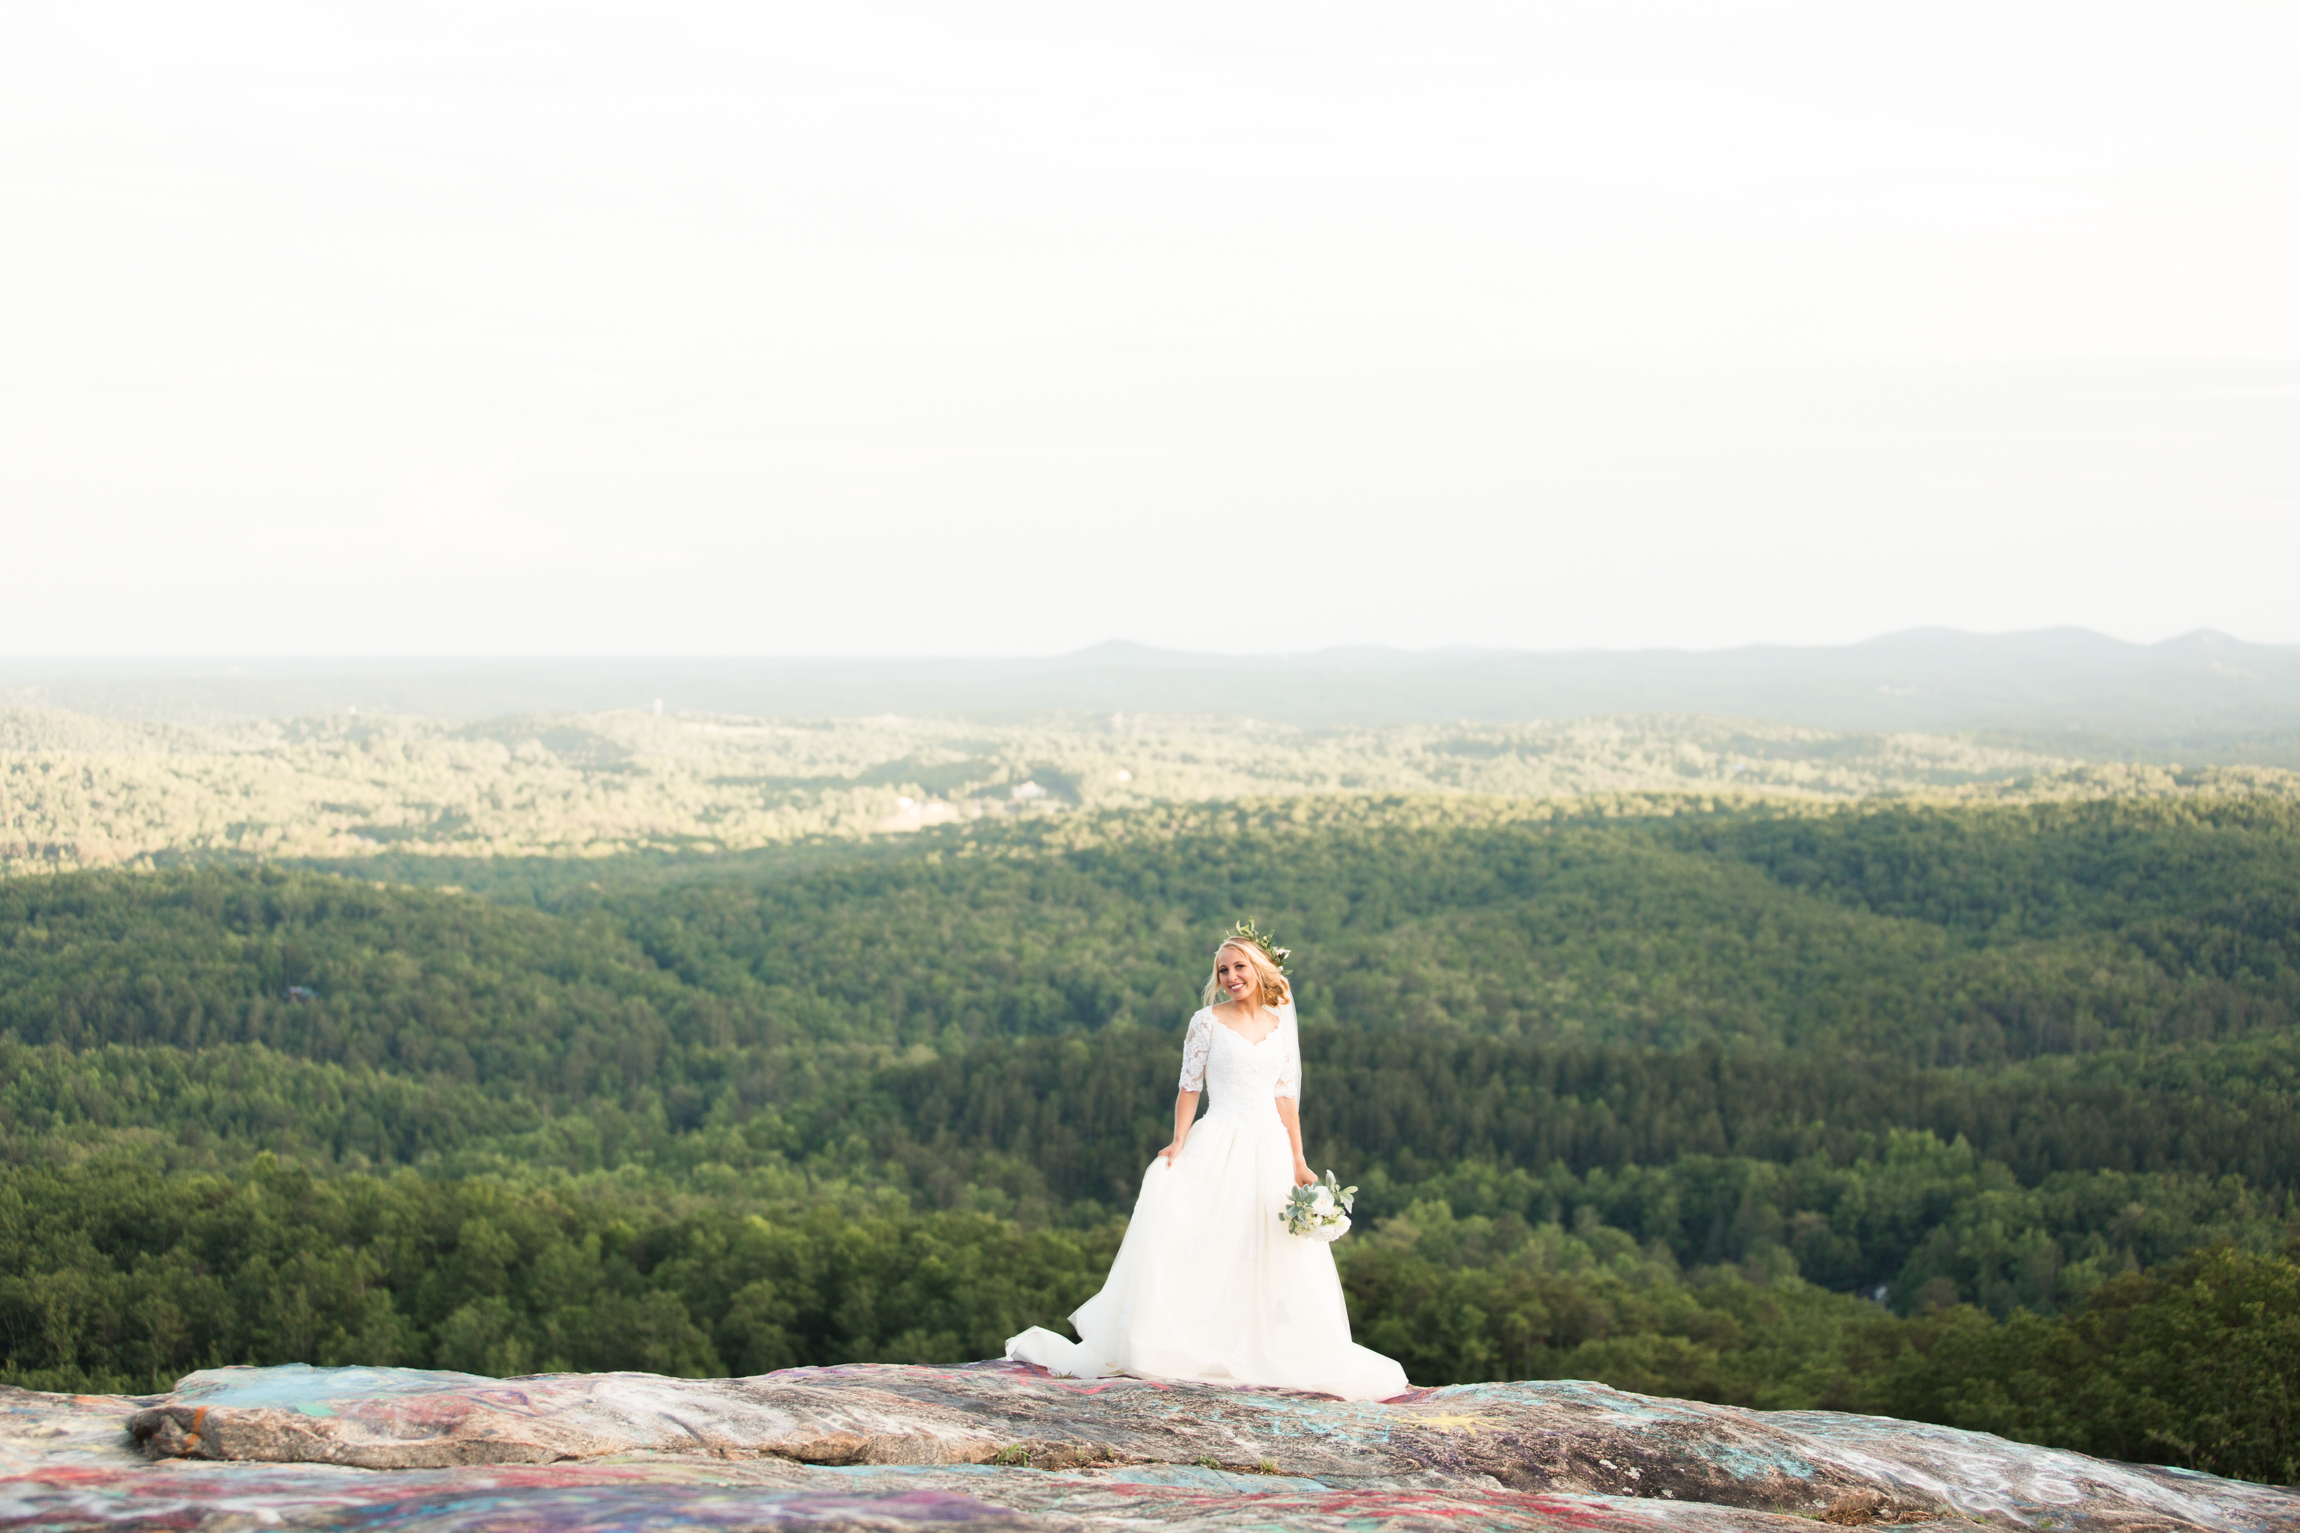 Lauren-Bald Rock South Carolina Bridal Photos-0592.jpg